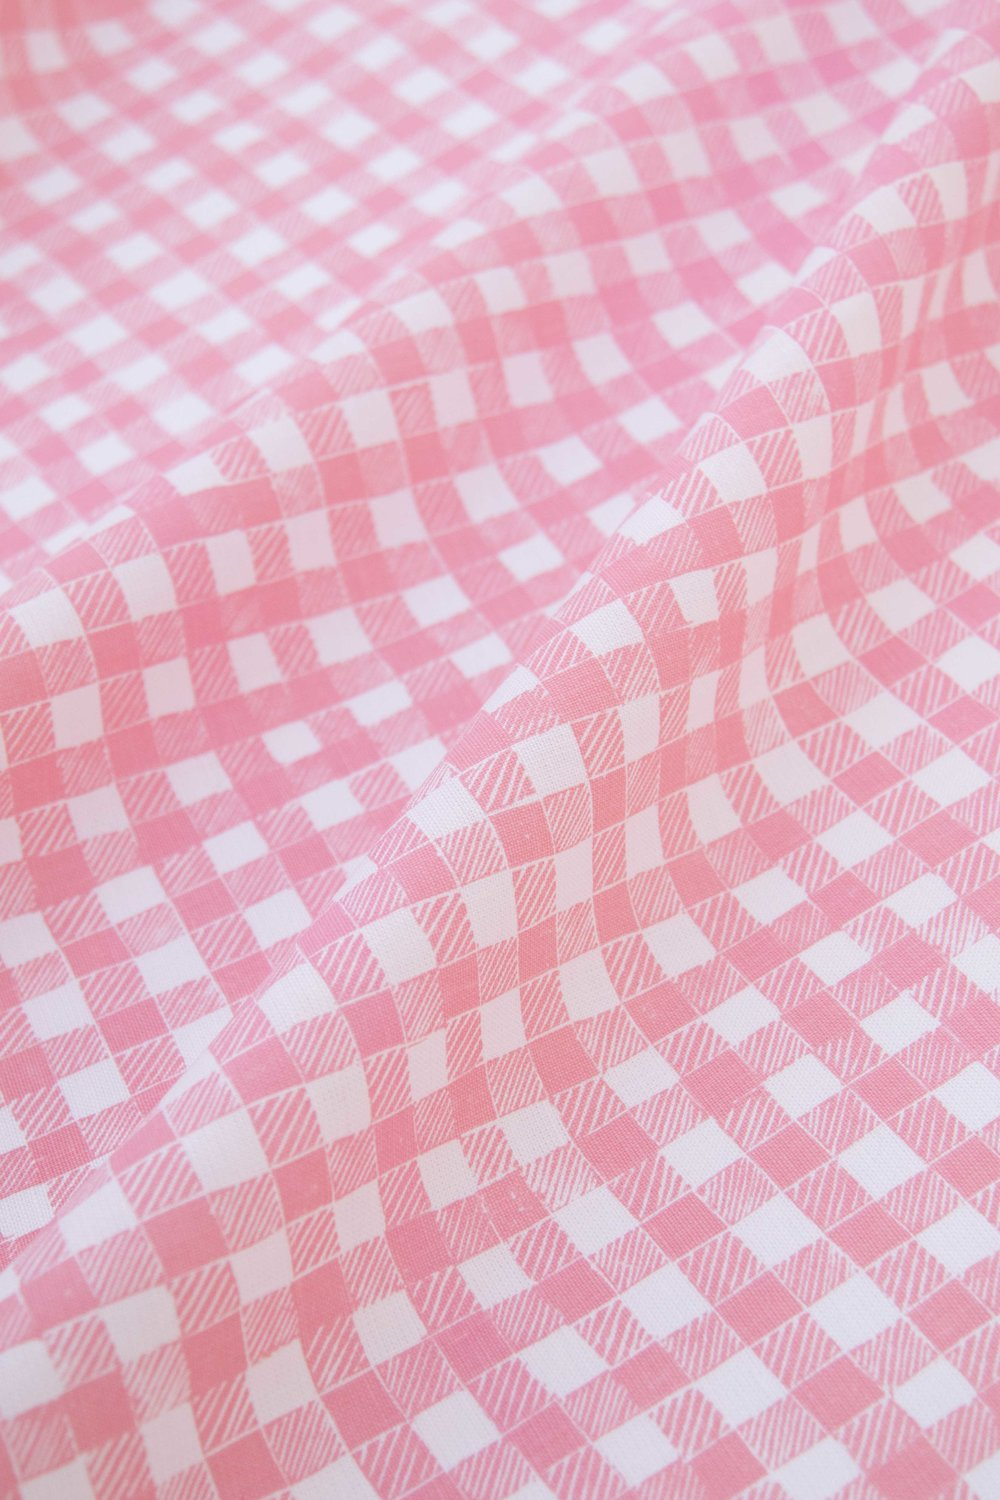 Block Print Gingham in Pink, KF250-05